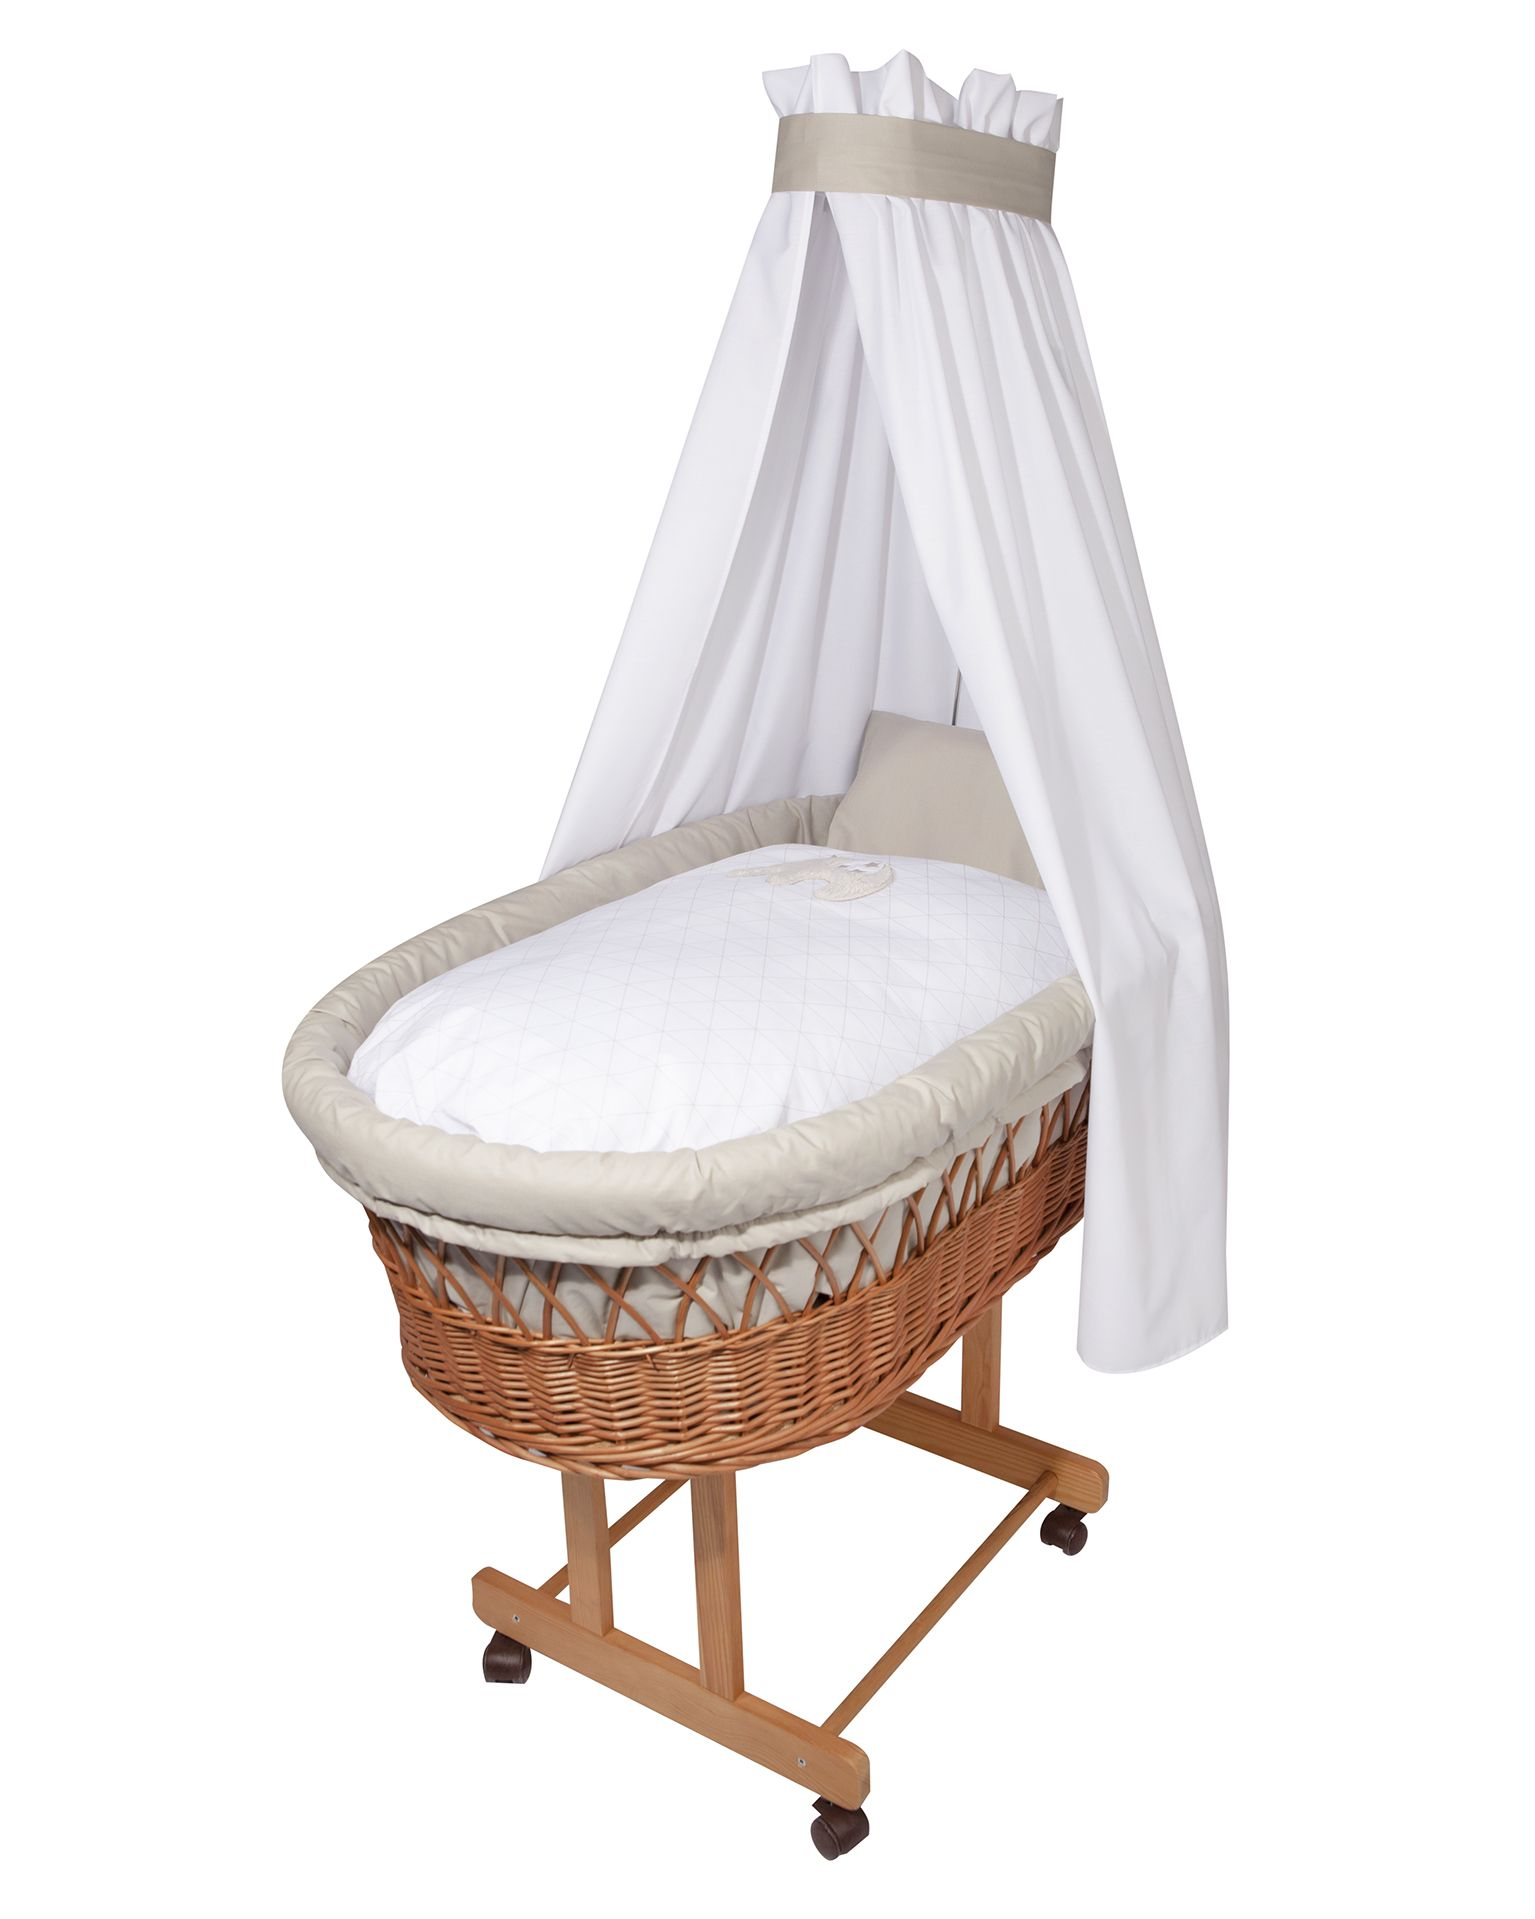 Zollner Bassinet Bedding Set With Applique Jumbo Taupe Buy At Kidsroom At Home Baby Cot Accessories Baby Cot Sets Beddings